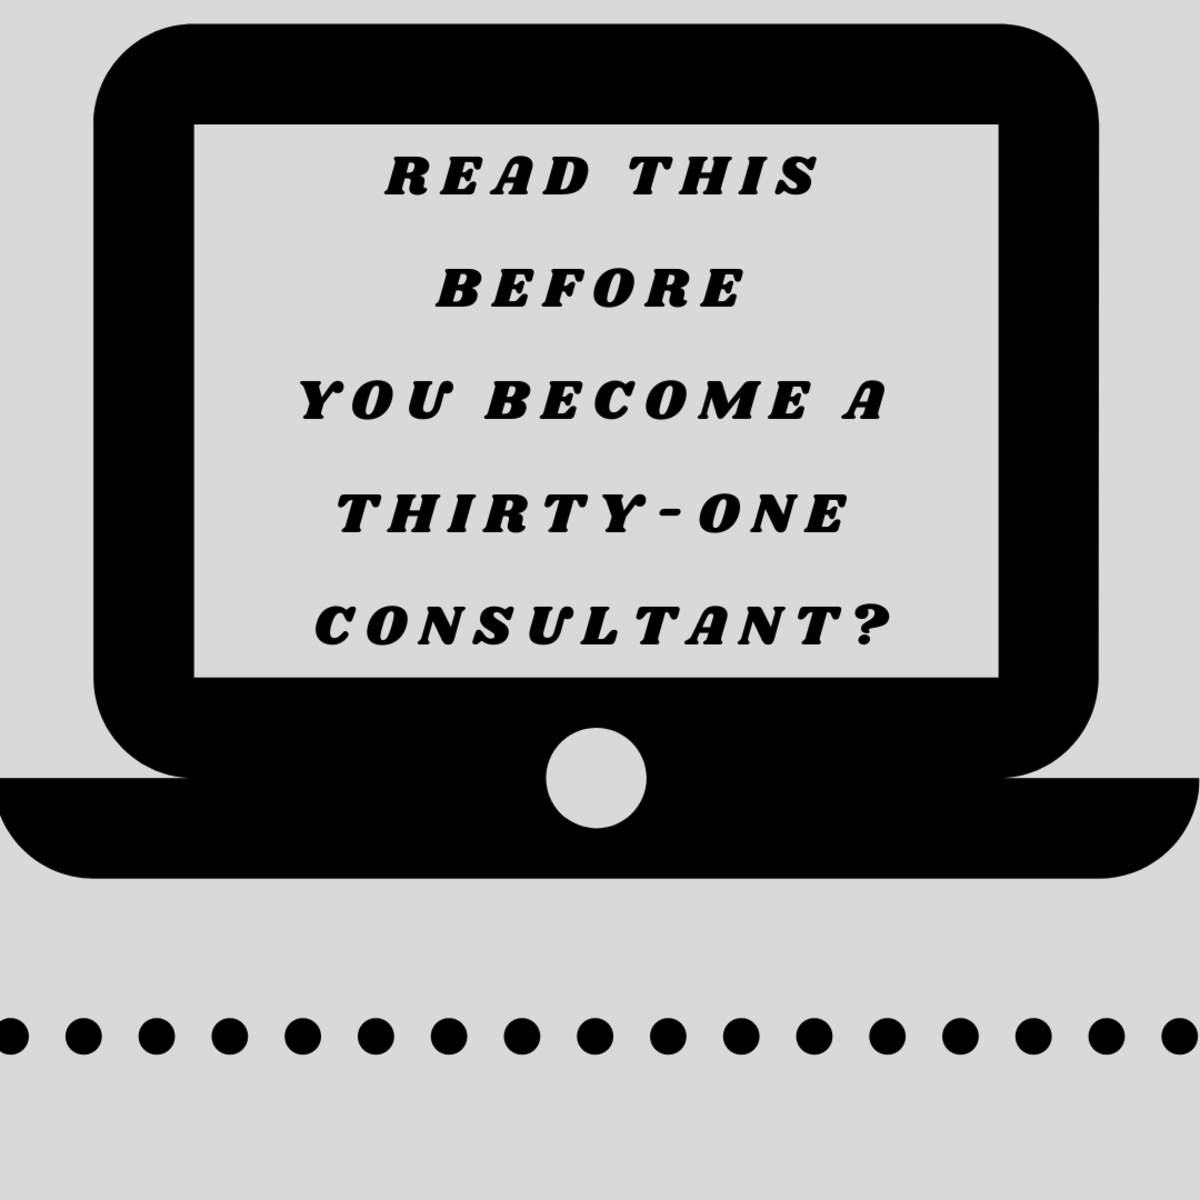 Read This Before You Become a Thirty-One Consultant